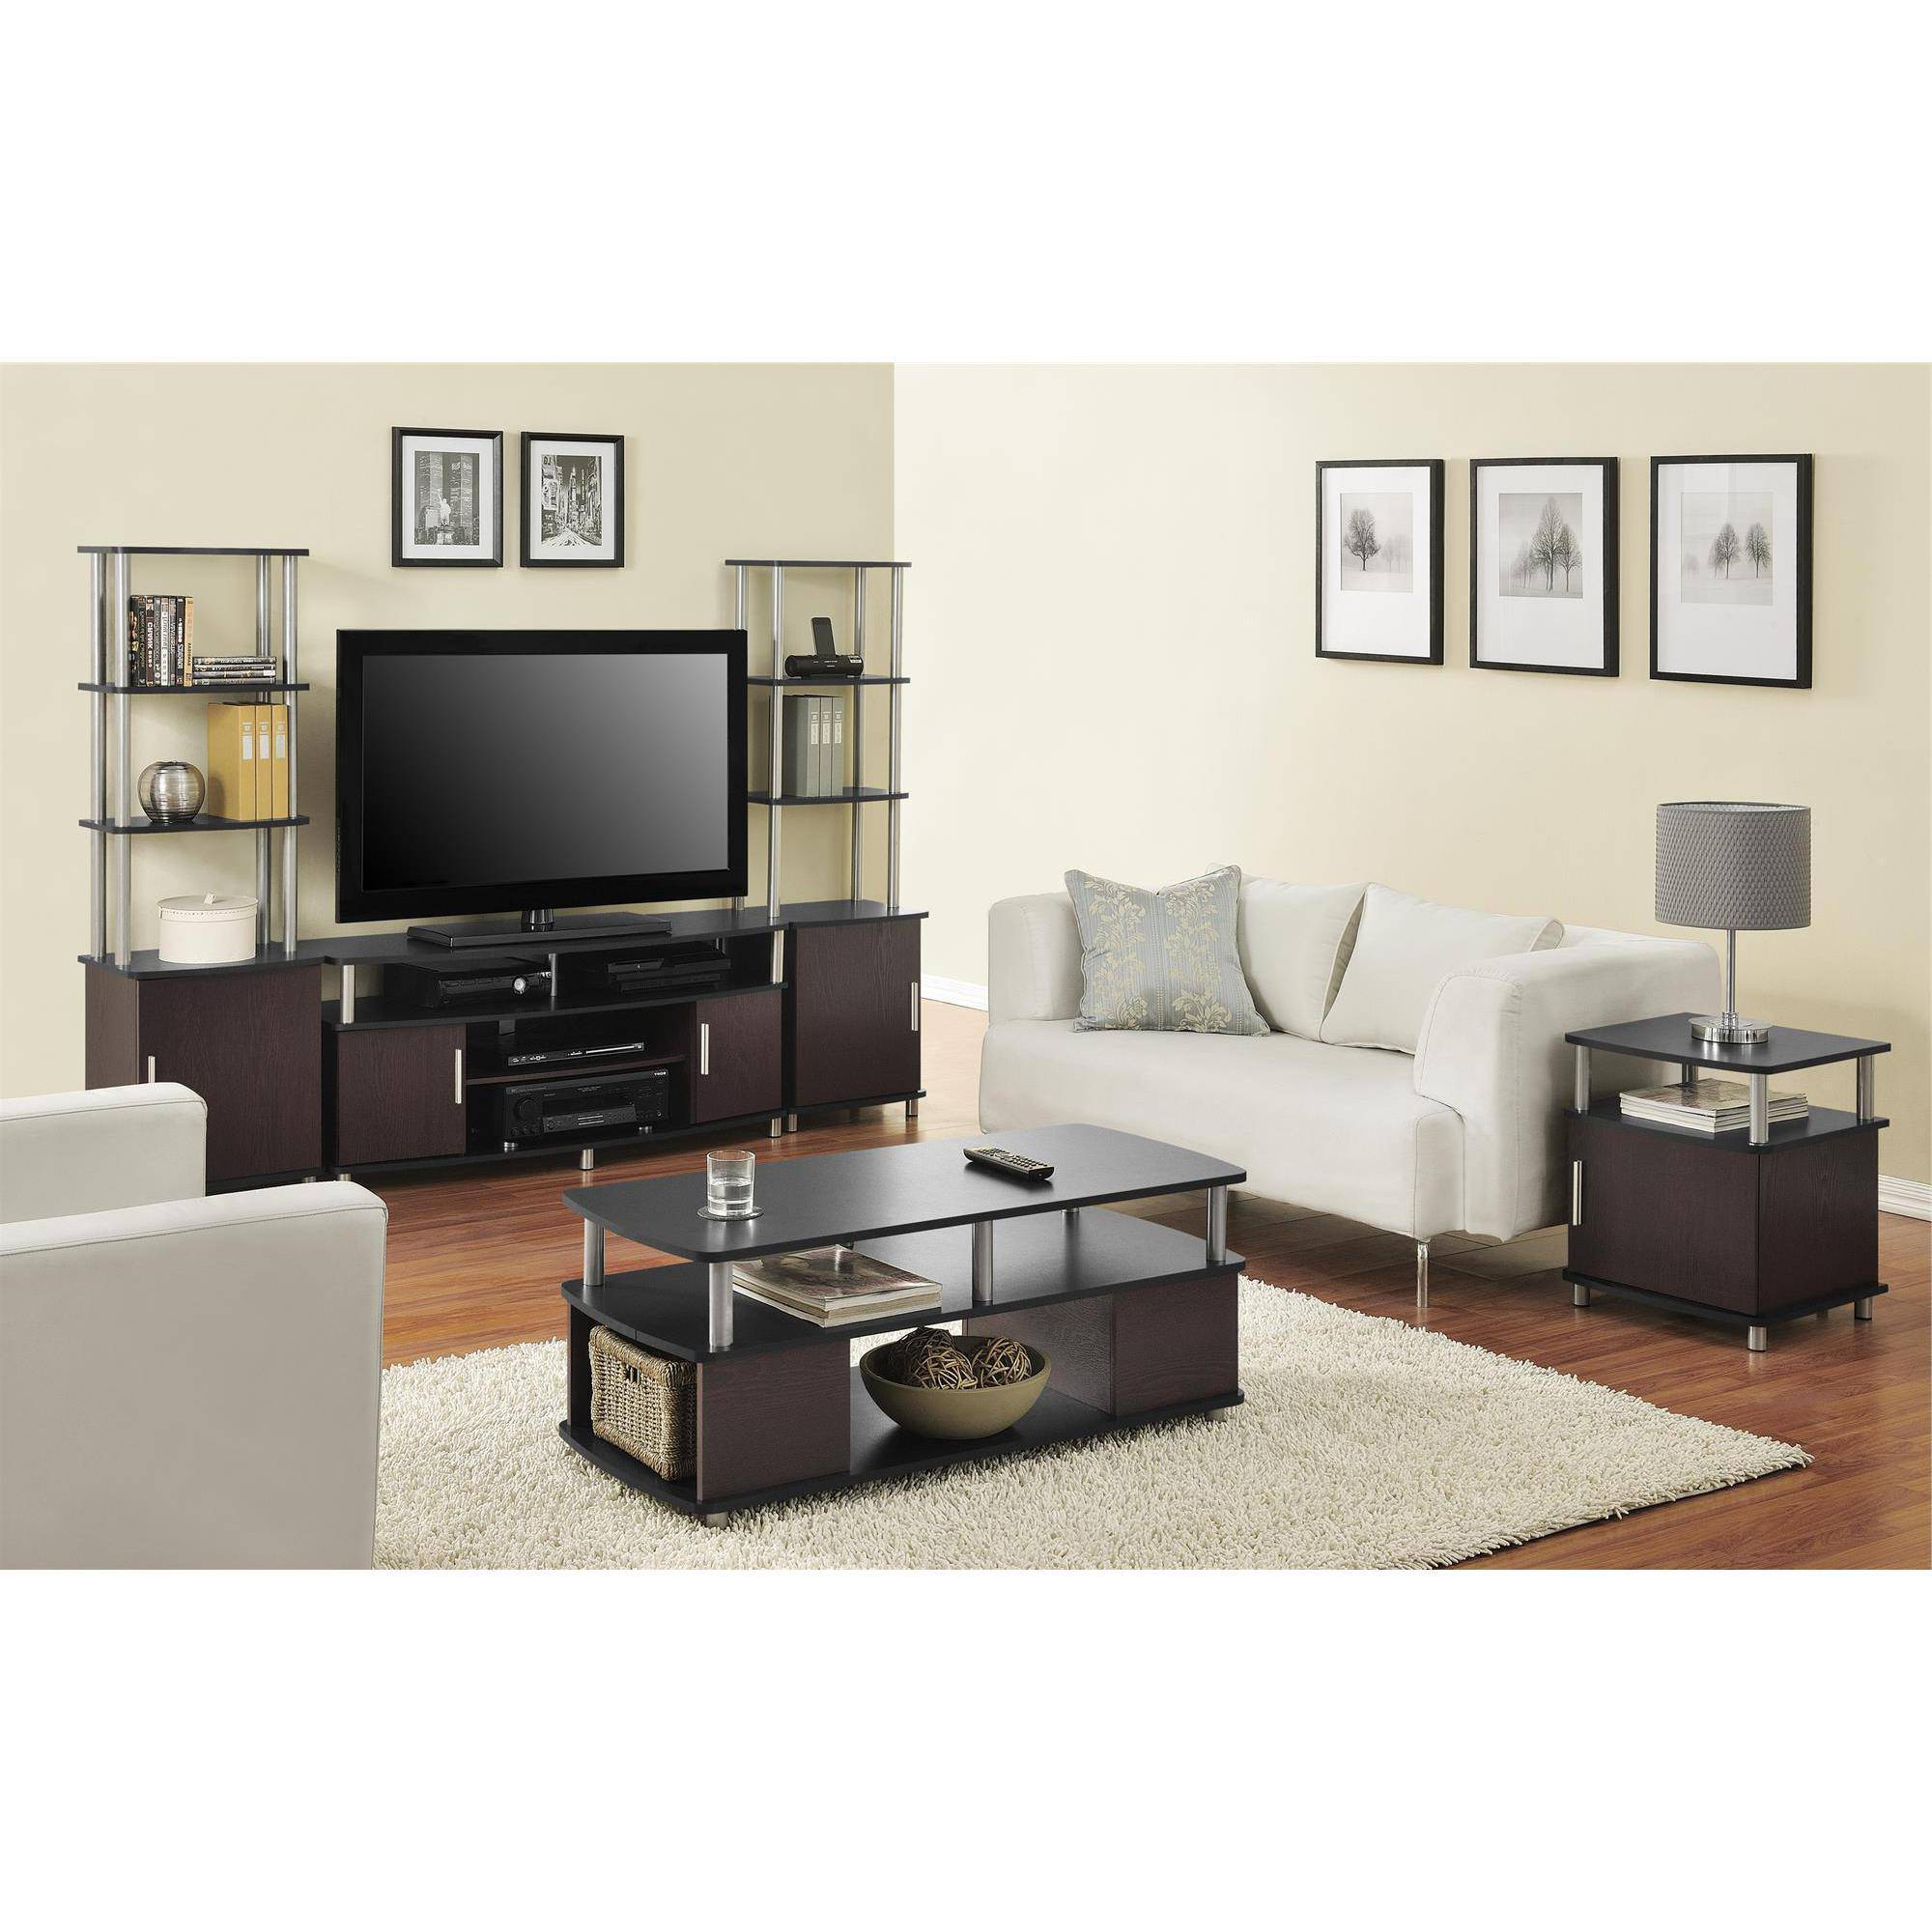 Matching Tv Stand And Computer Desk Can I Use A Coffee Table As Regarding Favorite Tv Cabinets And Coffee Table Sets (View 11 of 20)